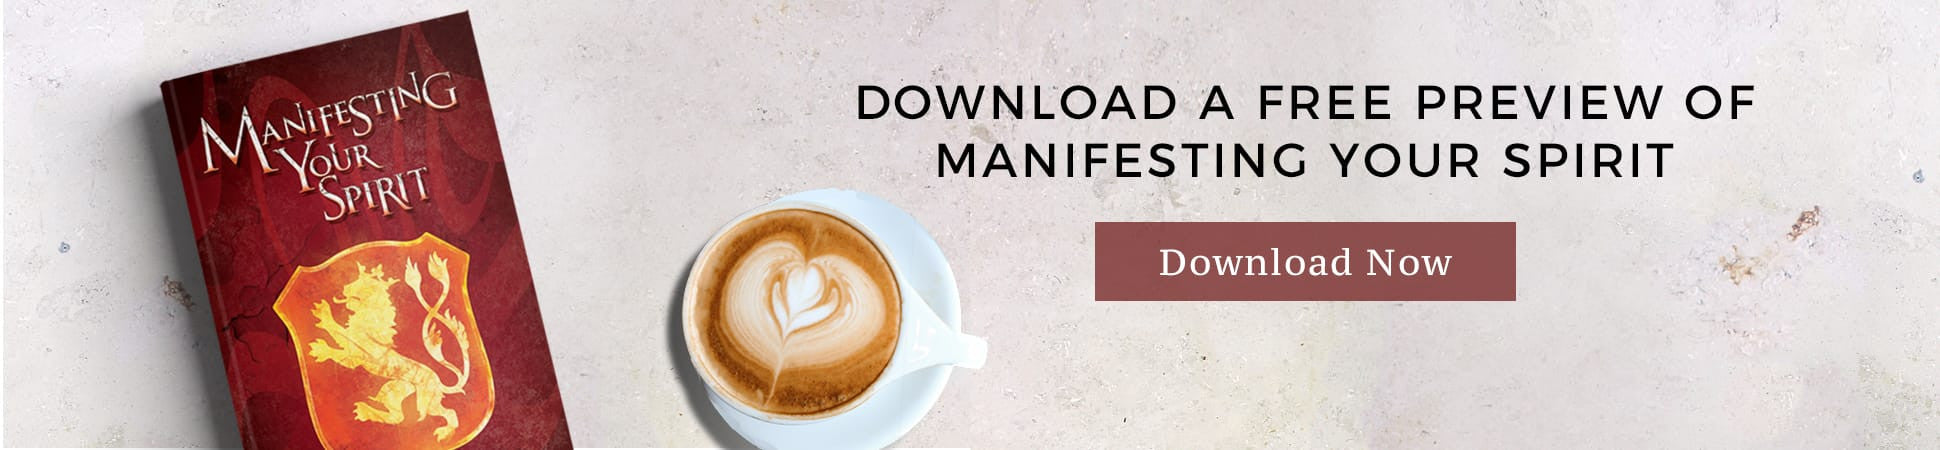 Manifesting Your Spirit FREE preview